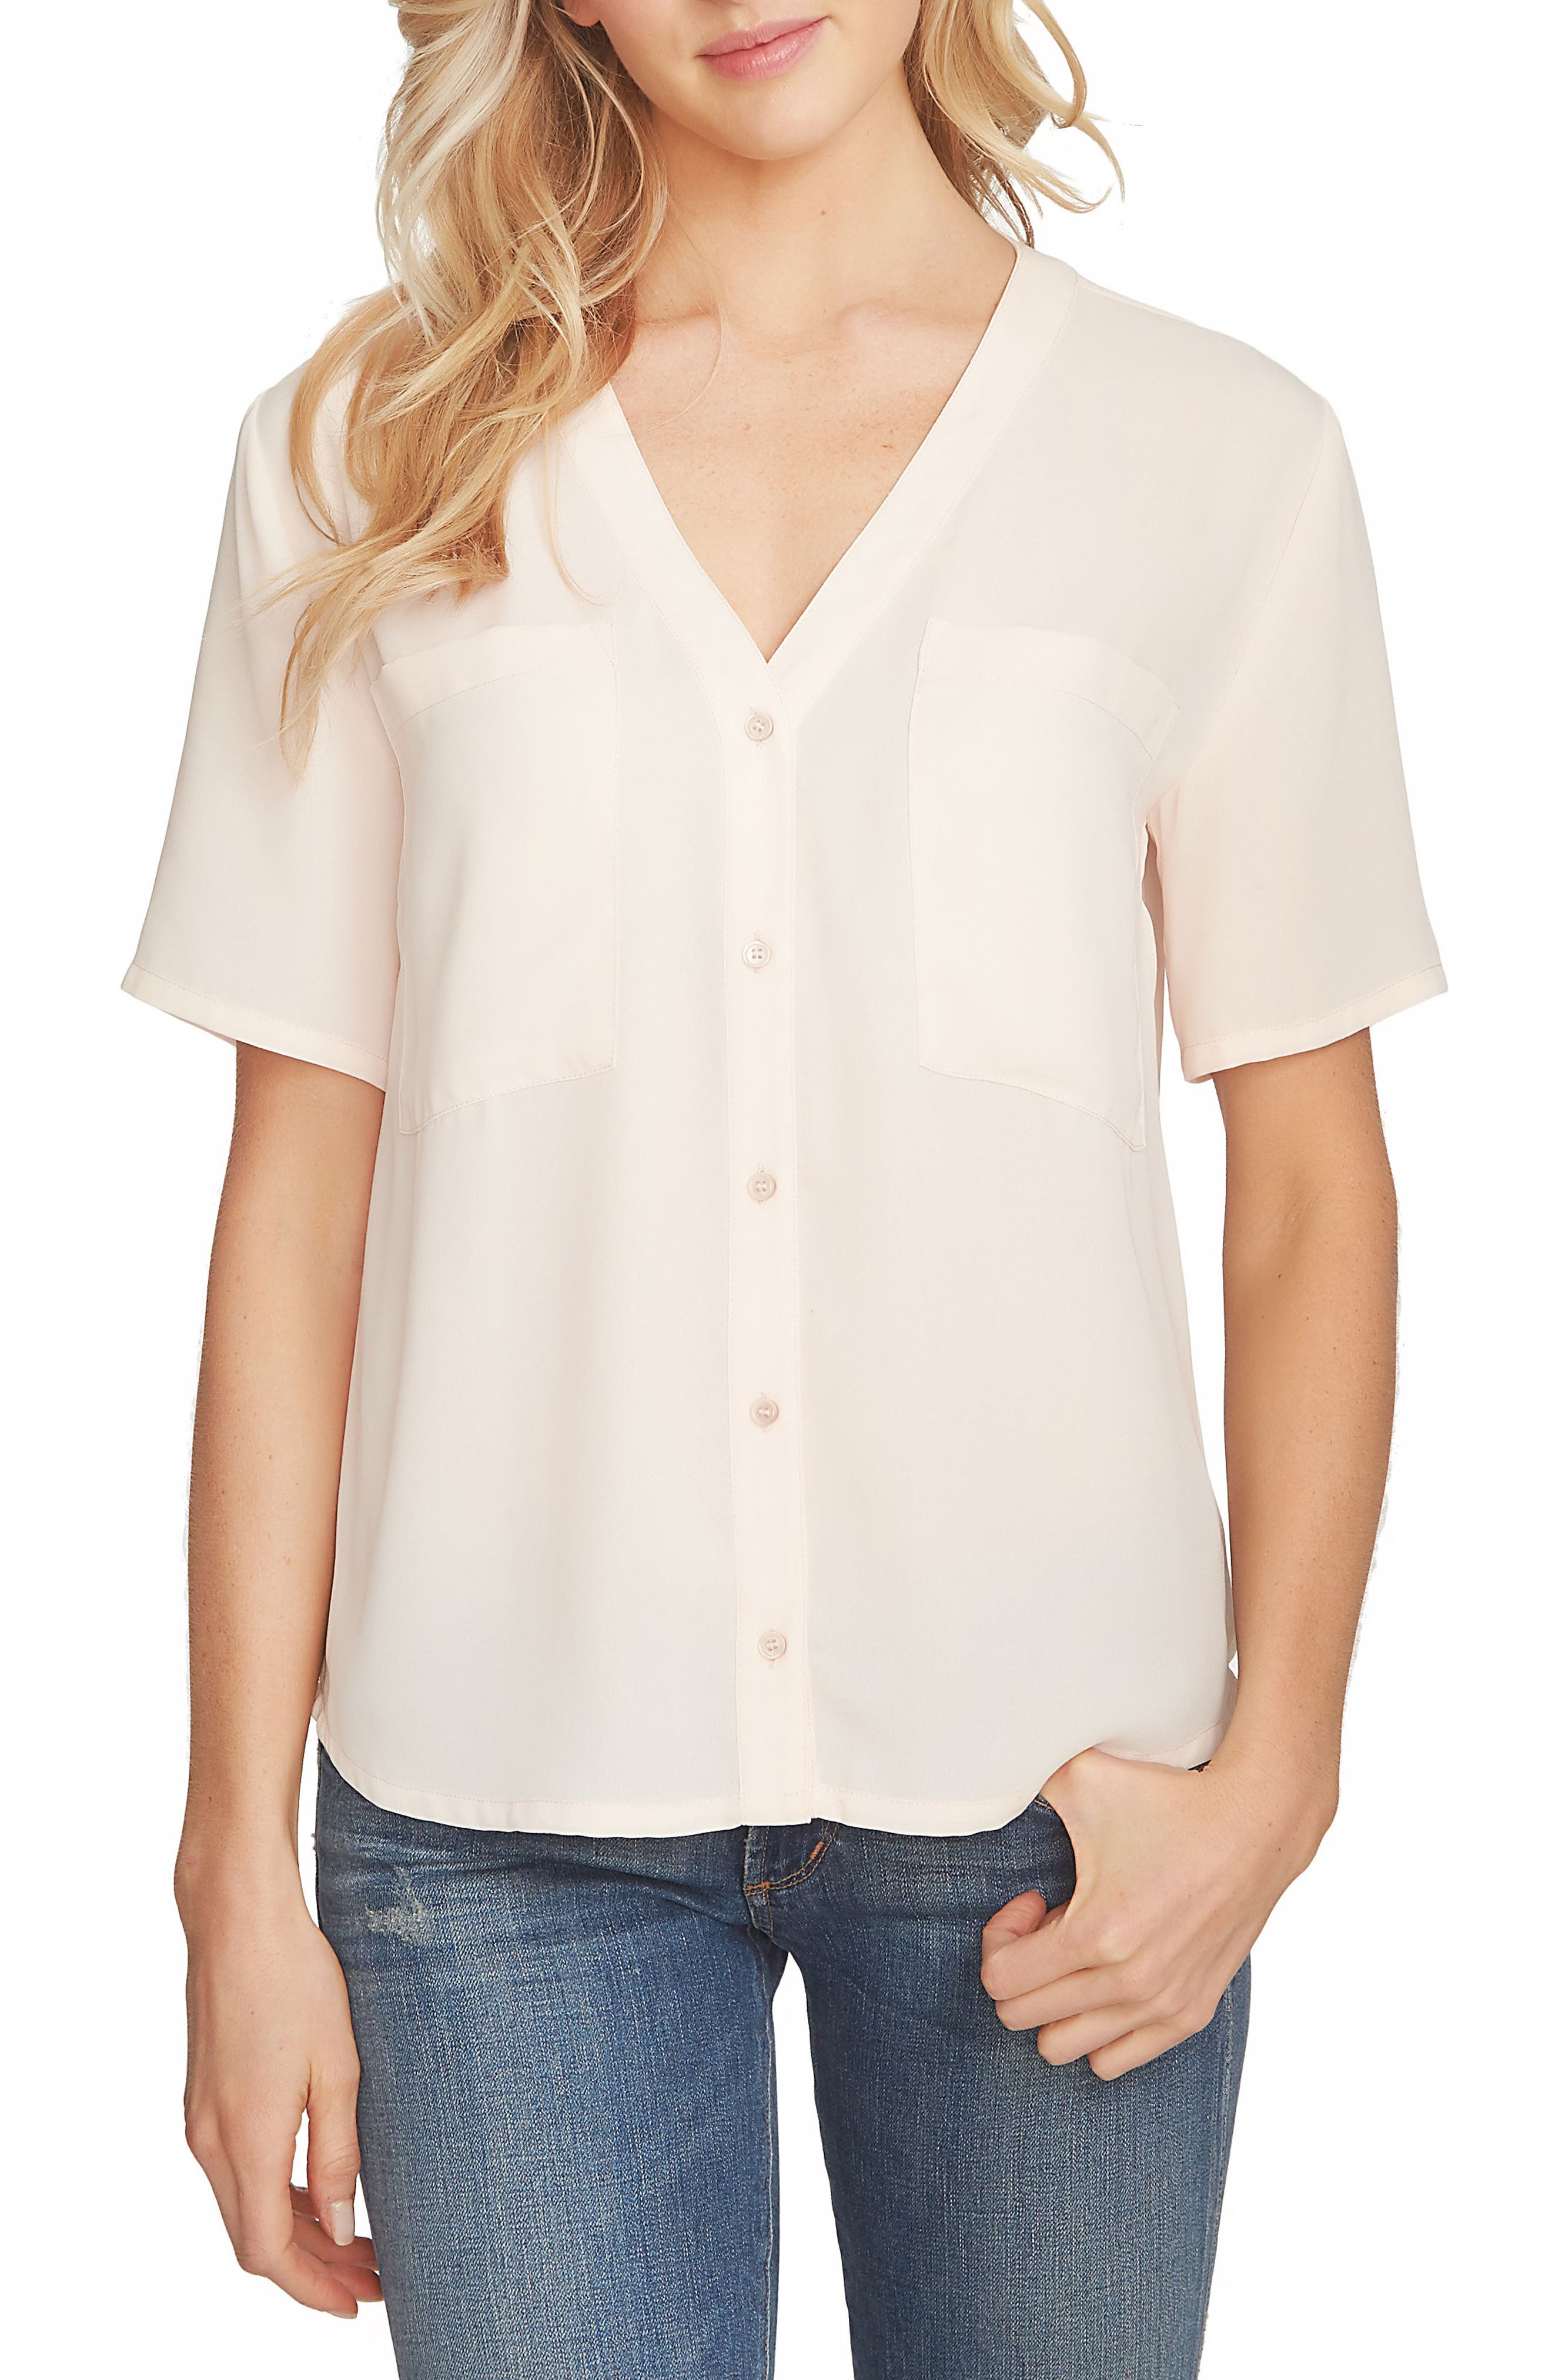 Main Image - 1.STATE V-Neck Button Front Blouse